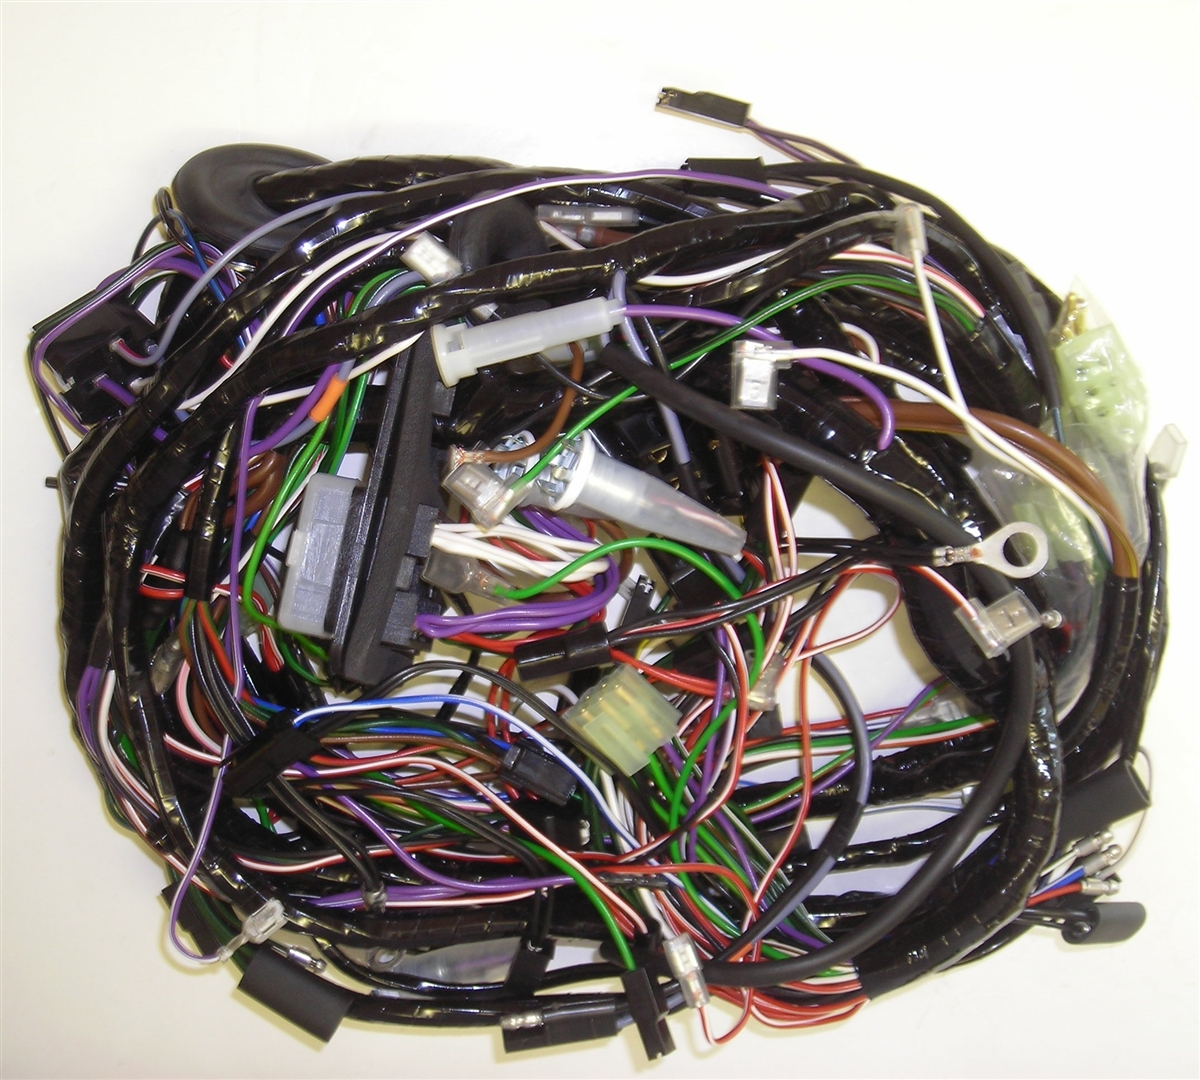 1531(3) 2?1443618008 spitfire1500 main wiring harness 73 triumph spitfire 1500 wiring harness at edmiracle.co